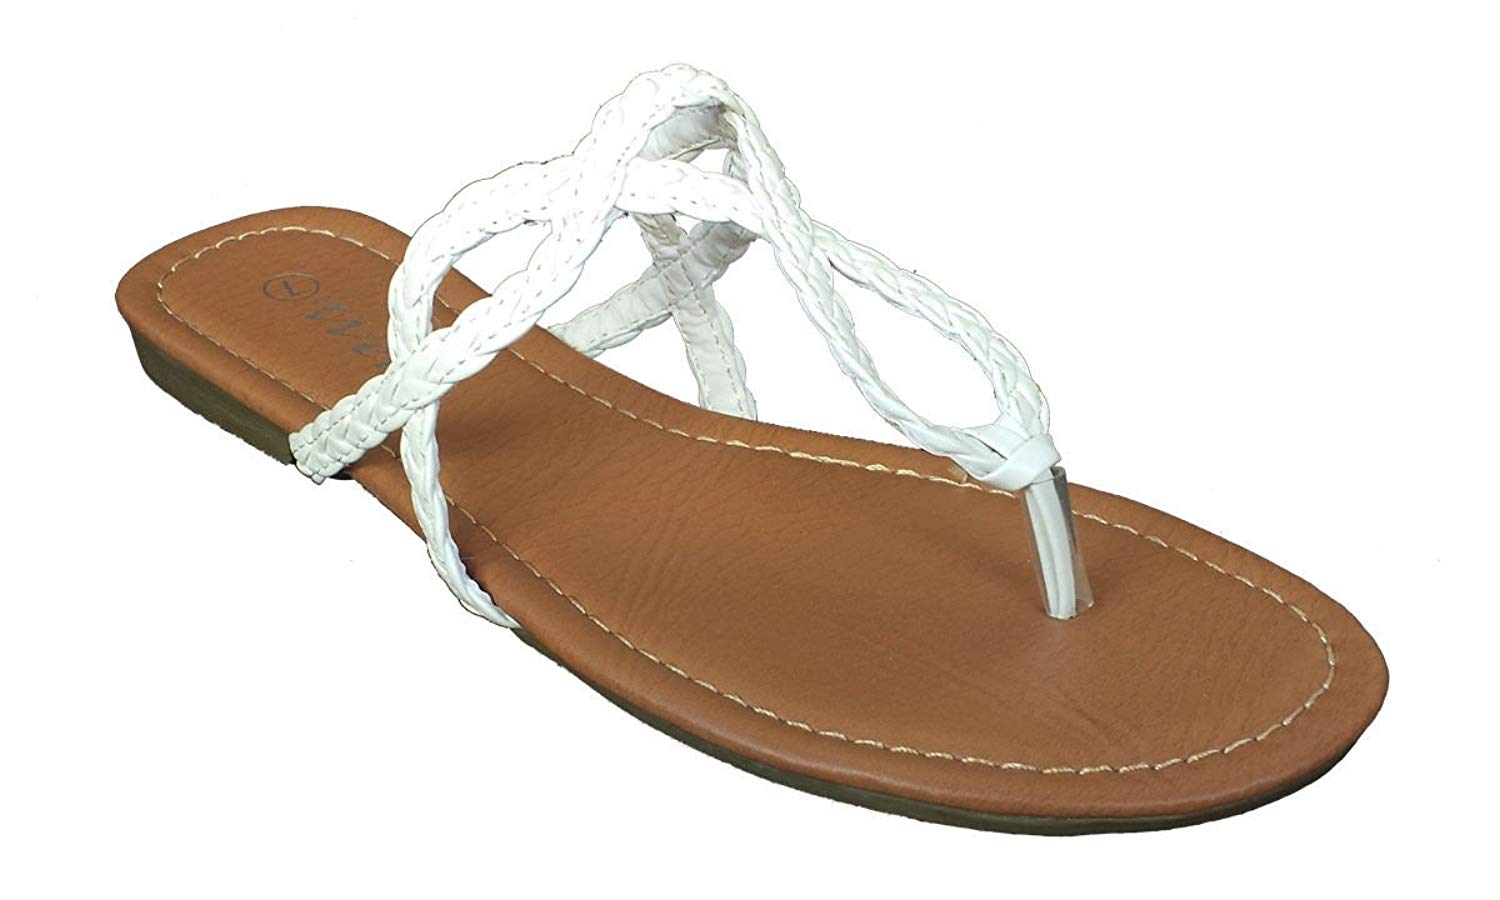 Elegant Women's Fashion Braided Straps White Color Flip Flop Sandals